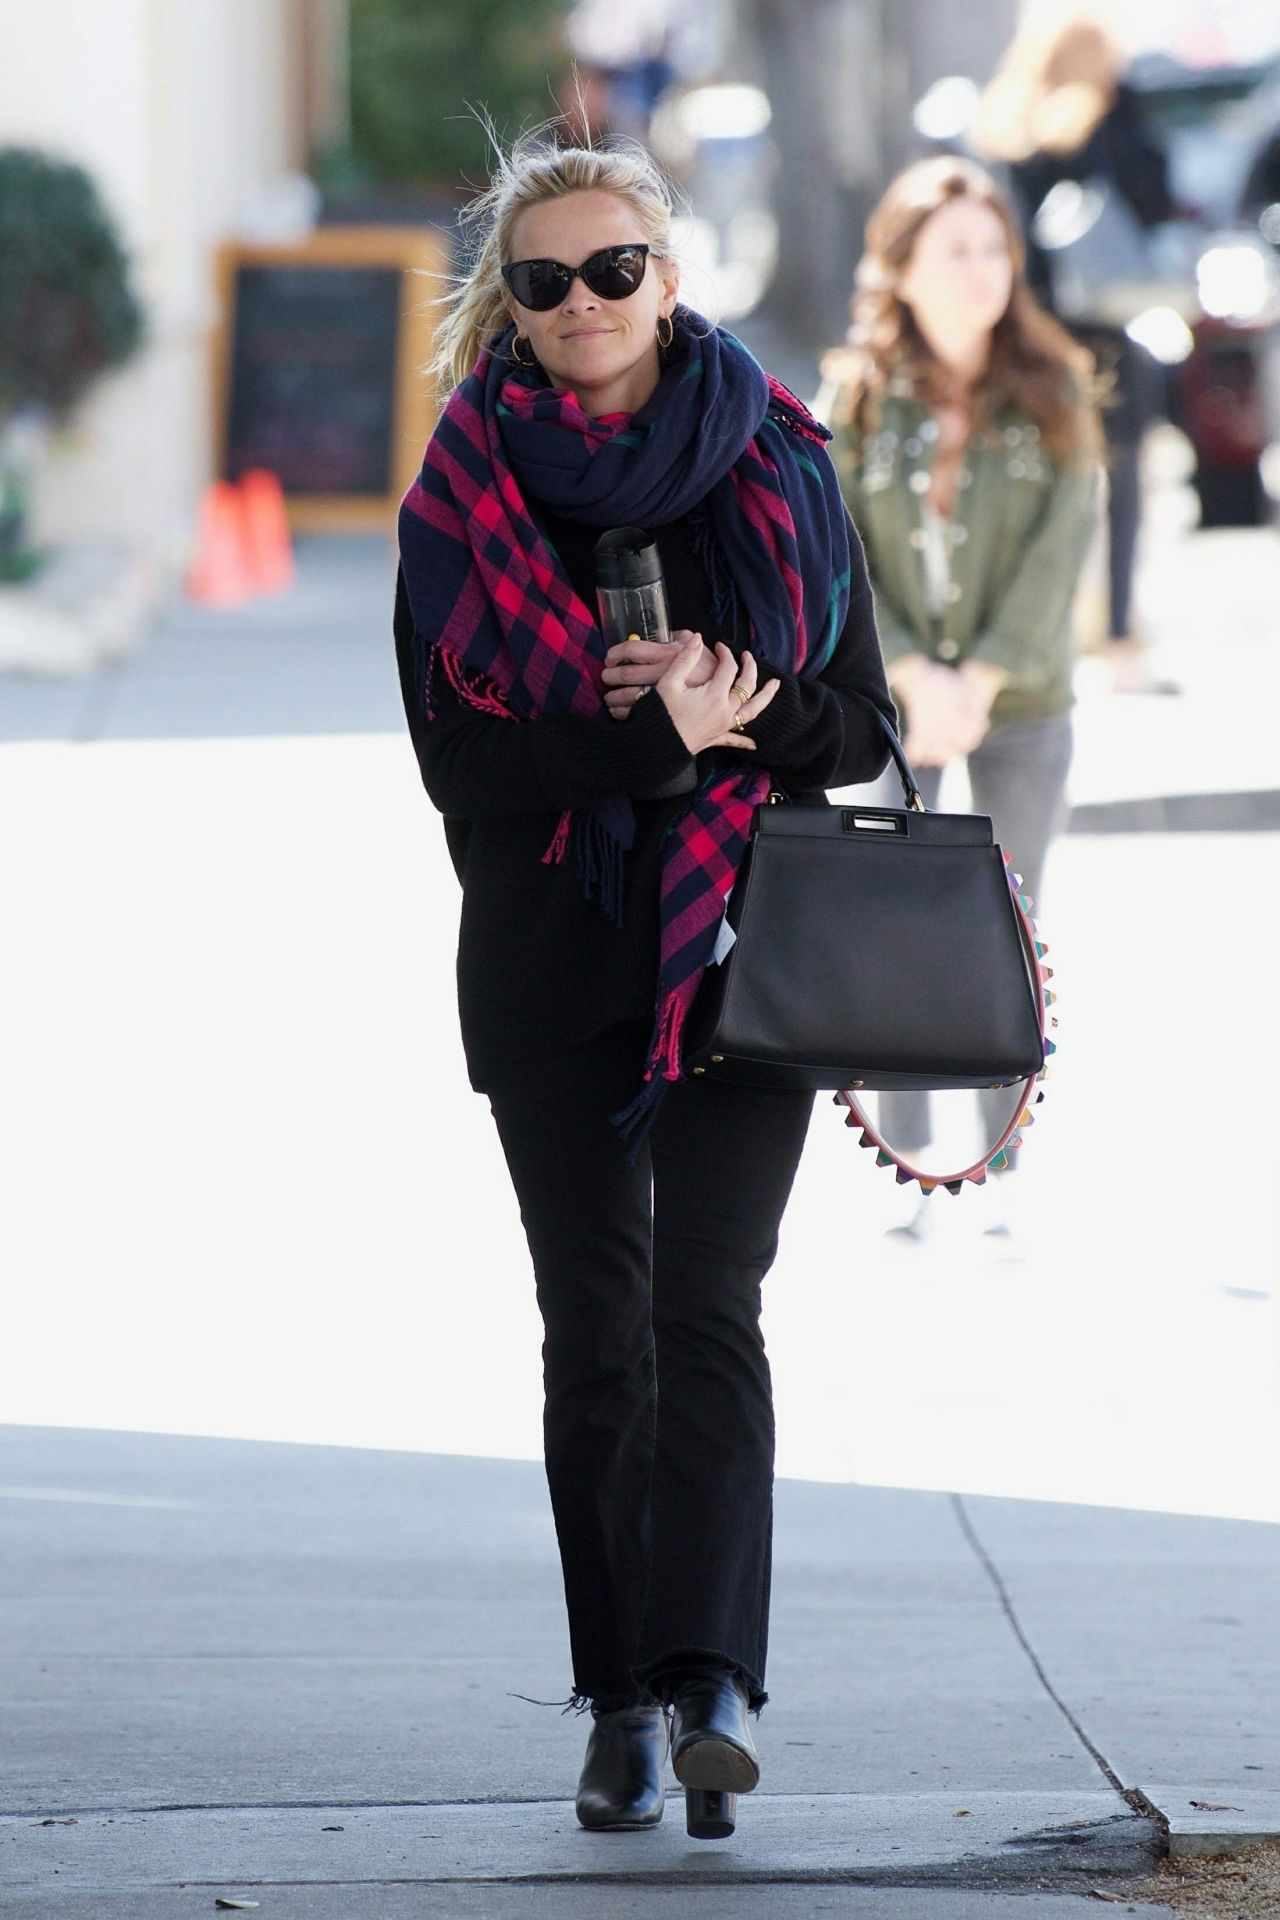 http://celebmafia.com/wp-content/uploads/2018/02/reese-witherspoon-shopping-in-santa-monica-02-27-2018-2.jpg